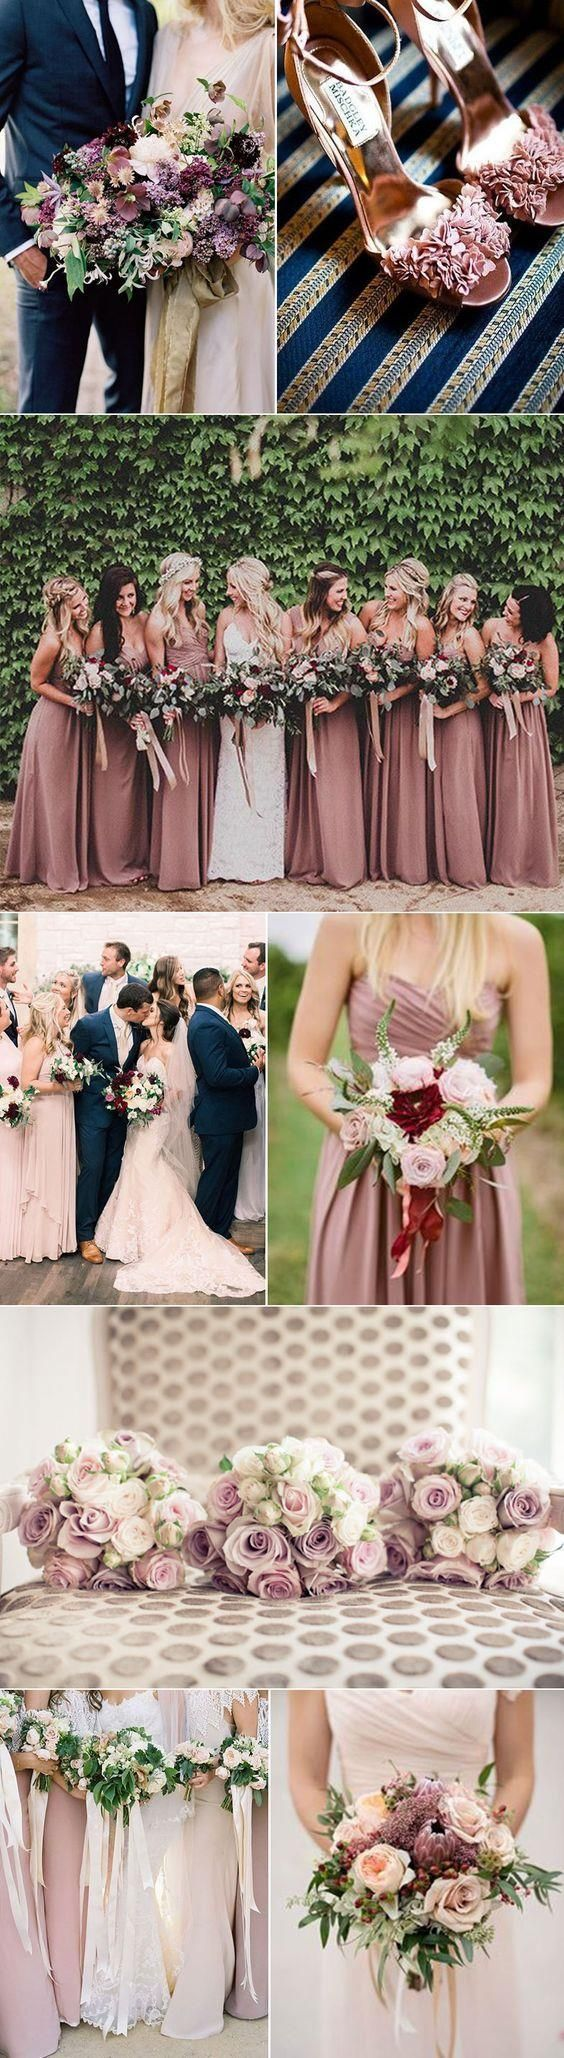 450 best spring wedding color schemes images on pinterest for Wedding color scheme ideas